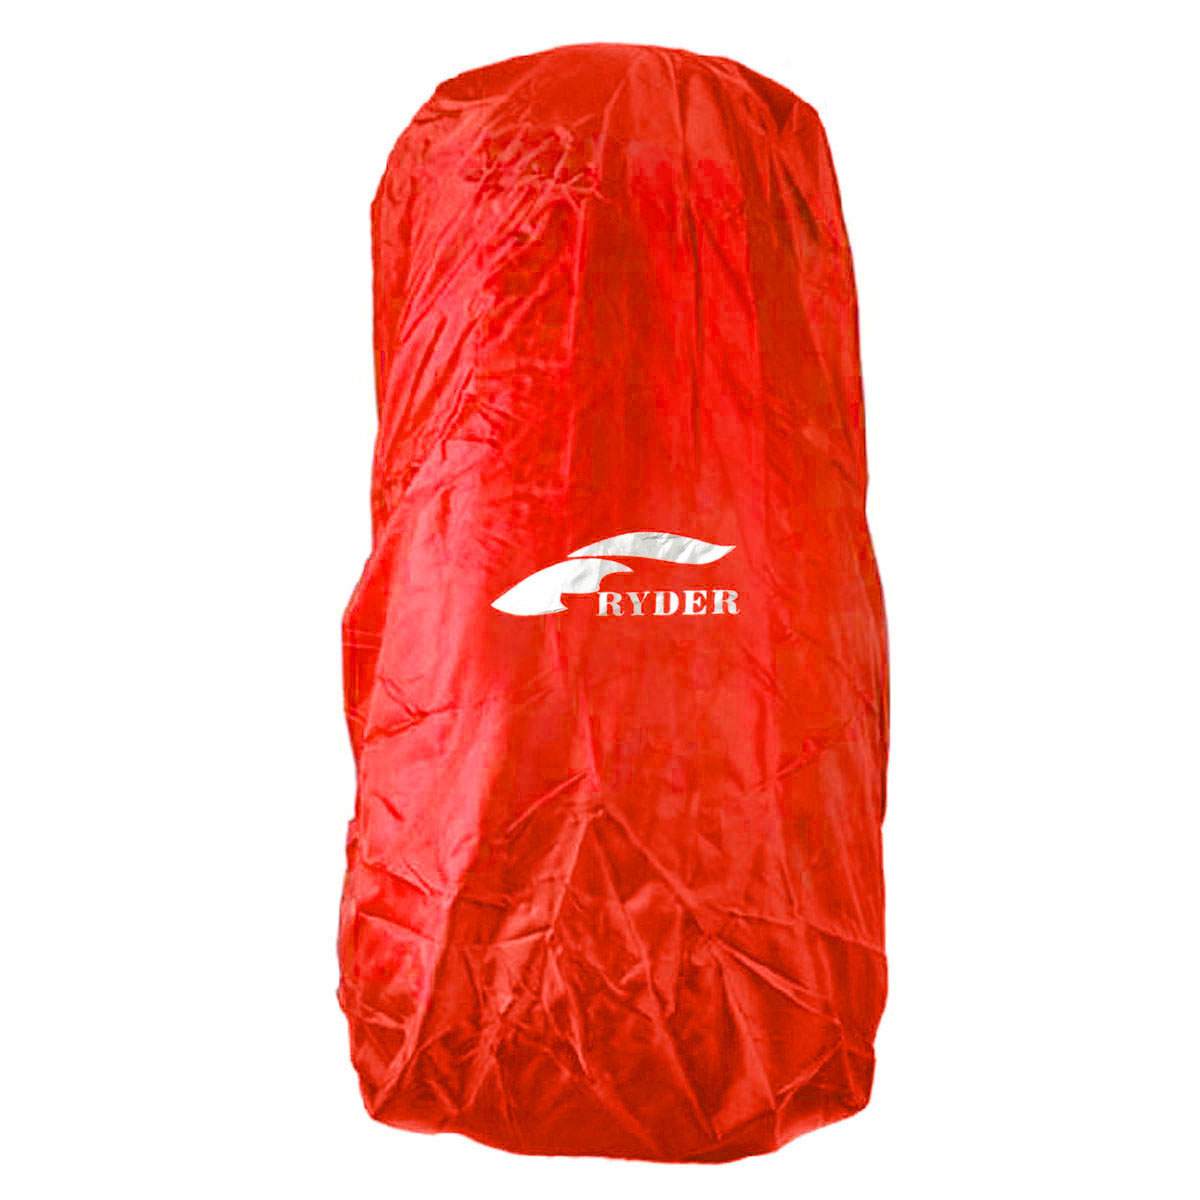 Outdoor Sport Waterproof Nylon Oxford Rain Cover for Backpack - Red (50~70L)